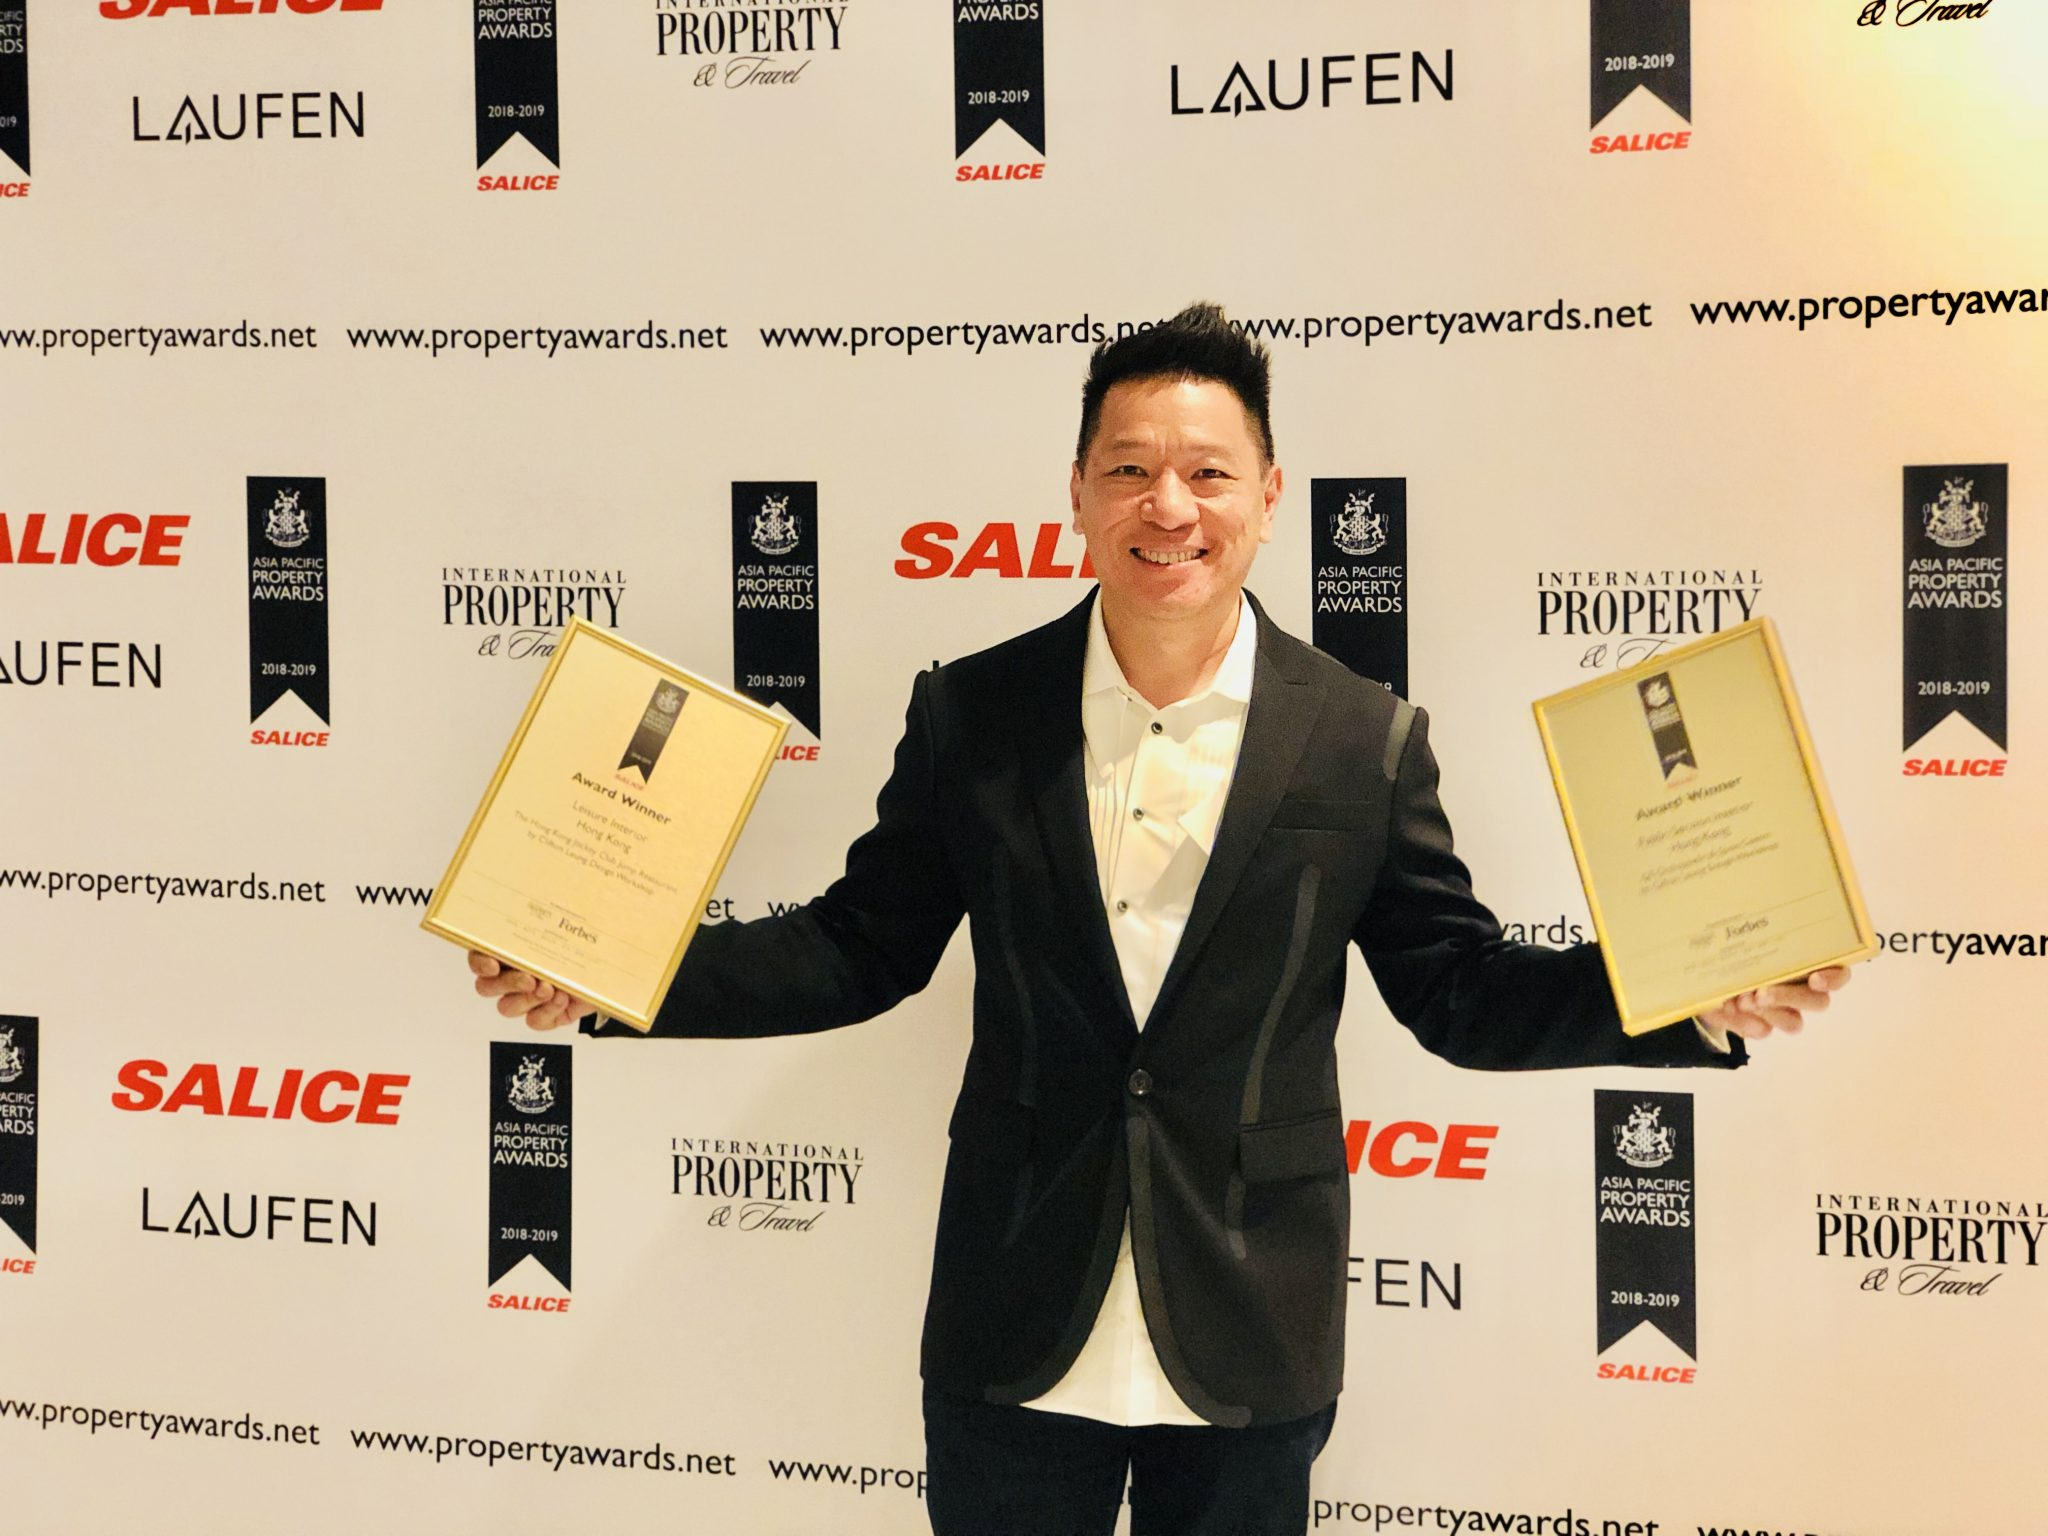 CLDW wins Two Major Awards at the Prestigious Asia Pacific Property Awards 2018-2019